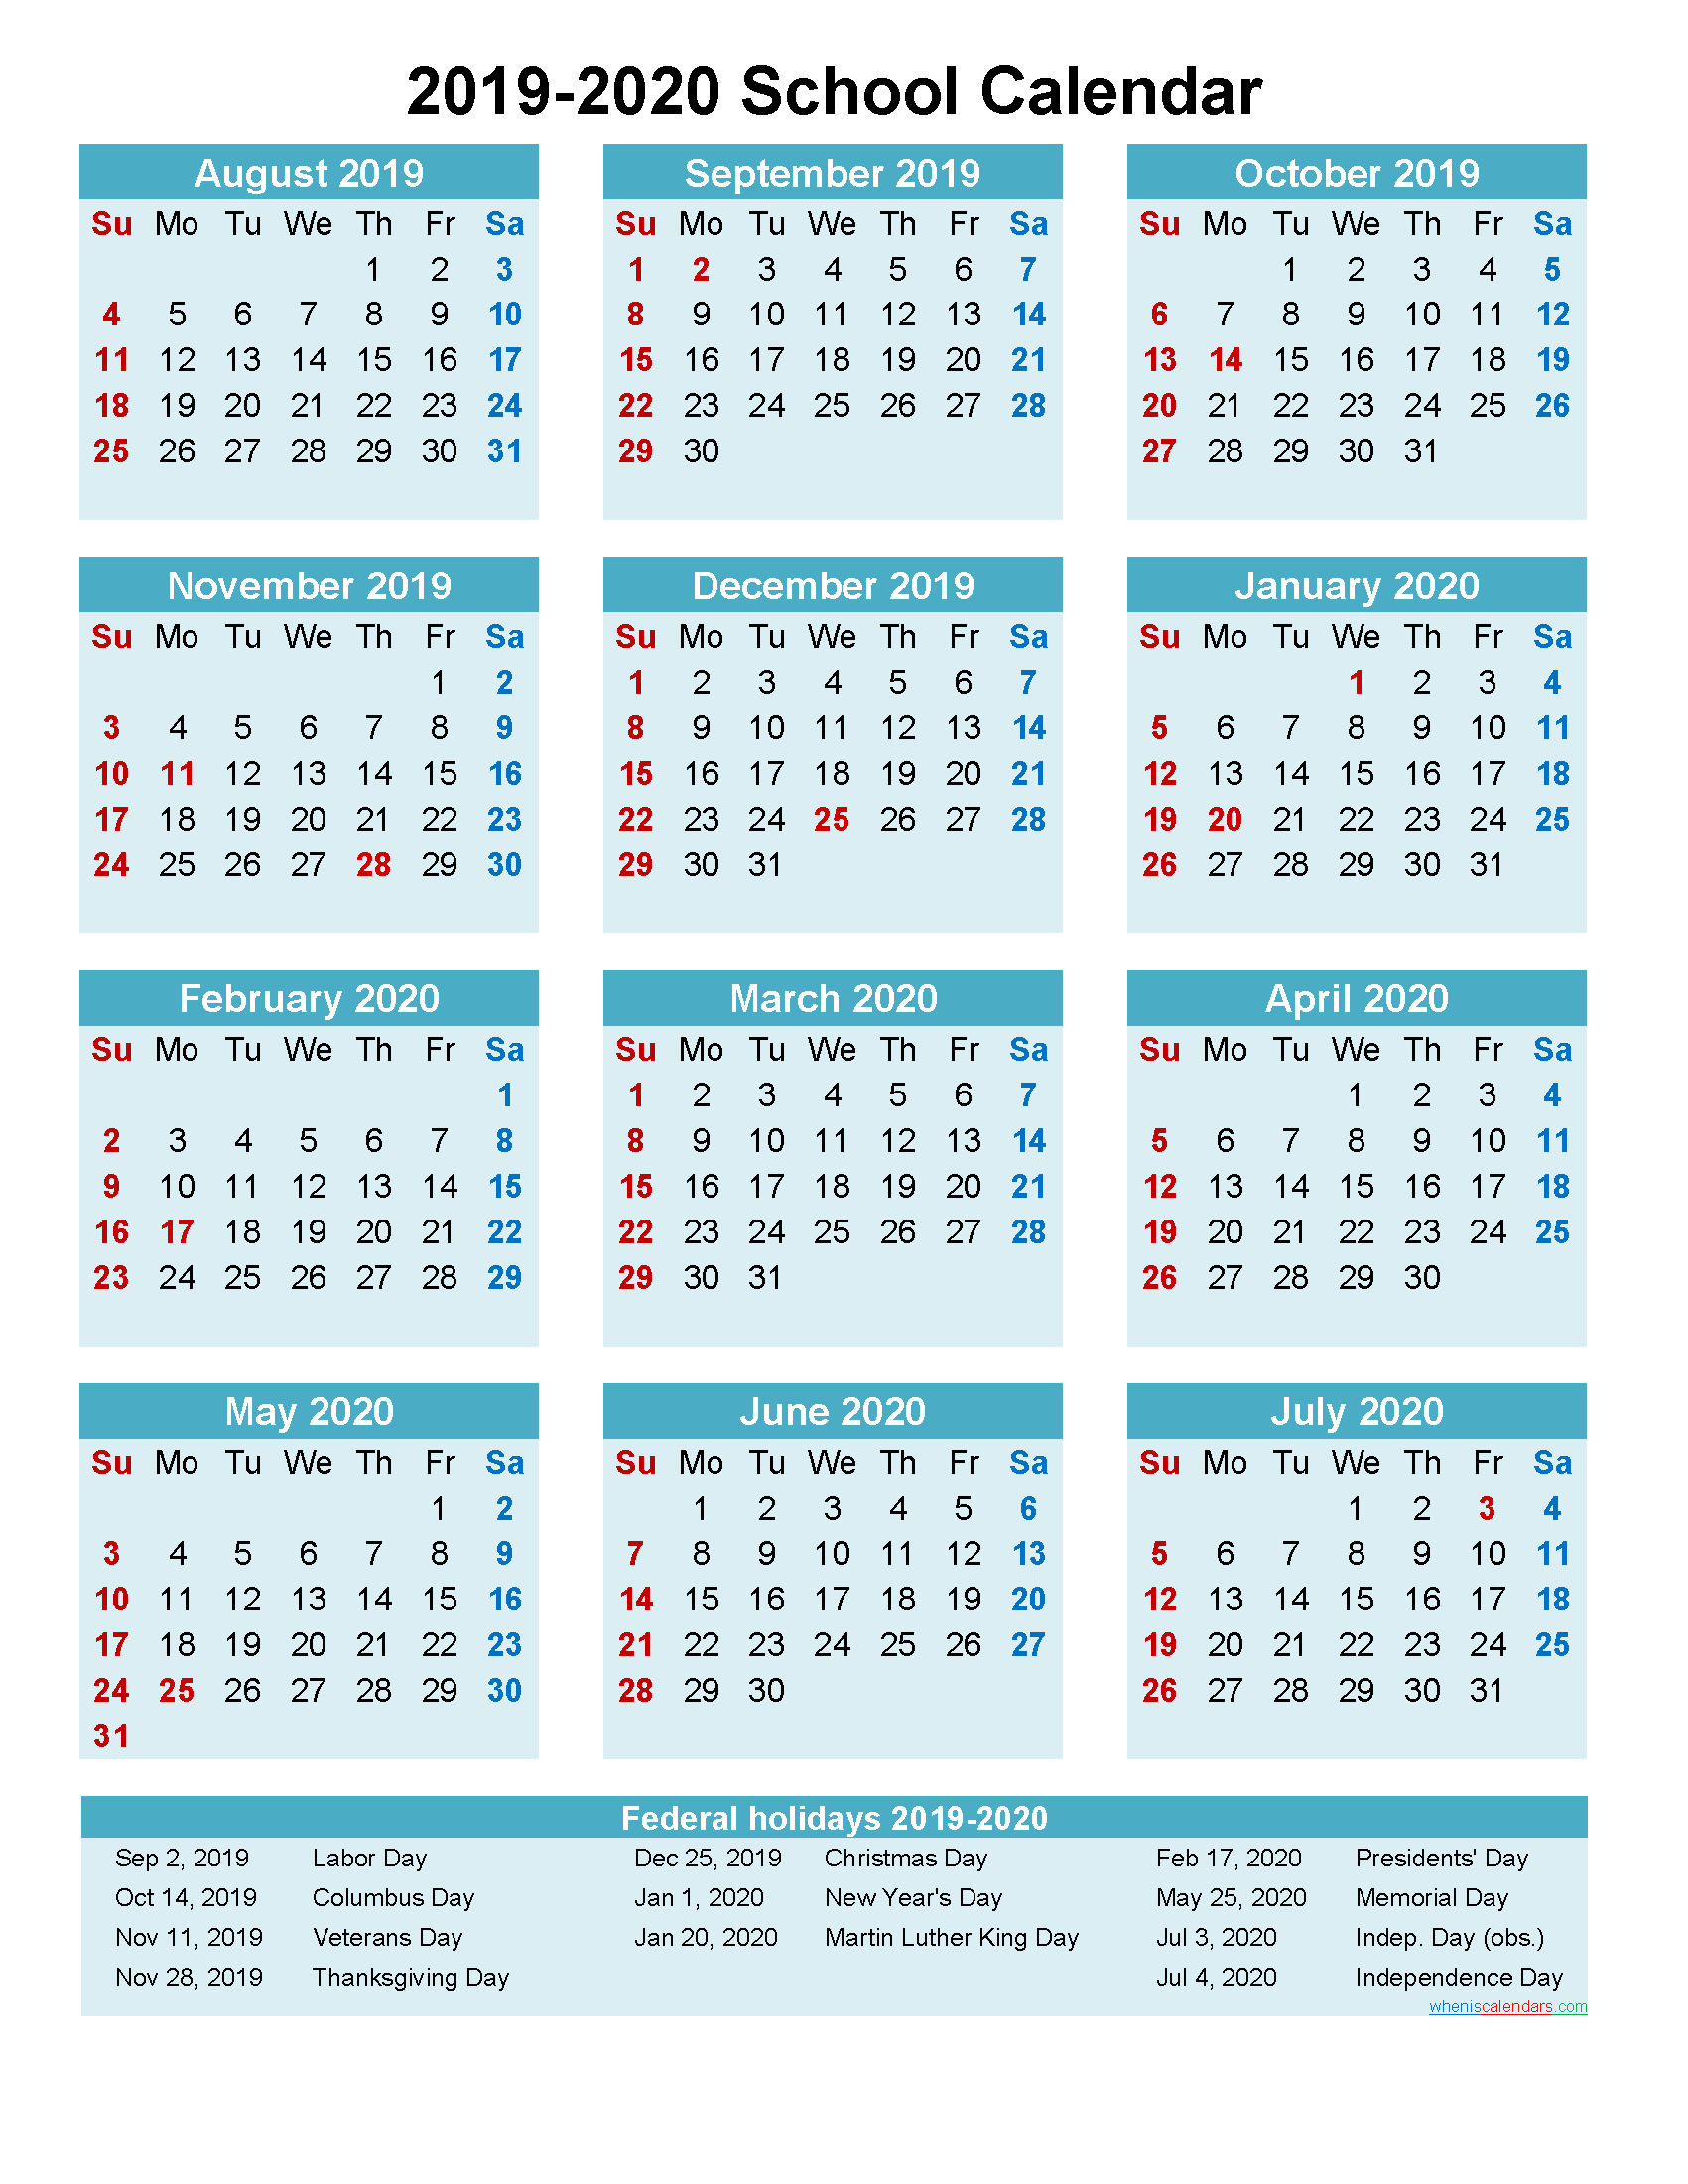 2019 and 2020 School Calendar Printable